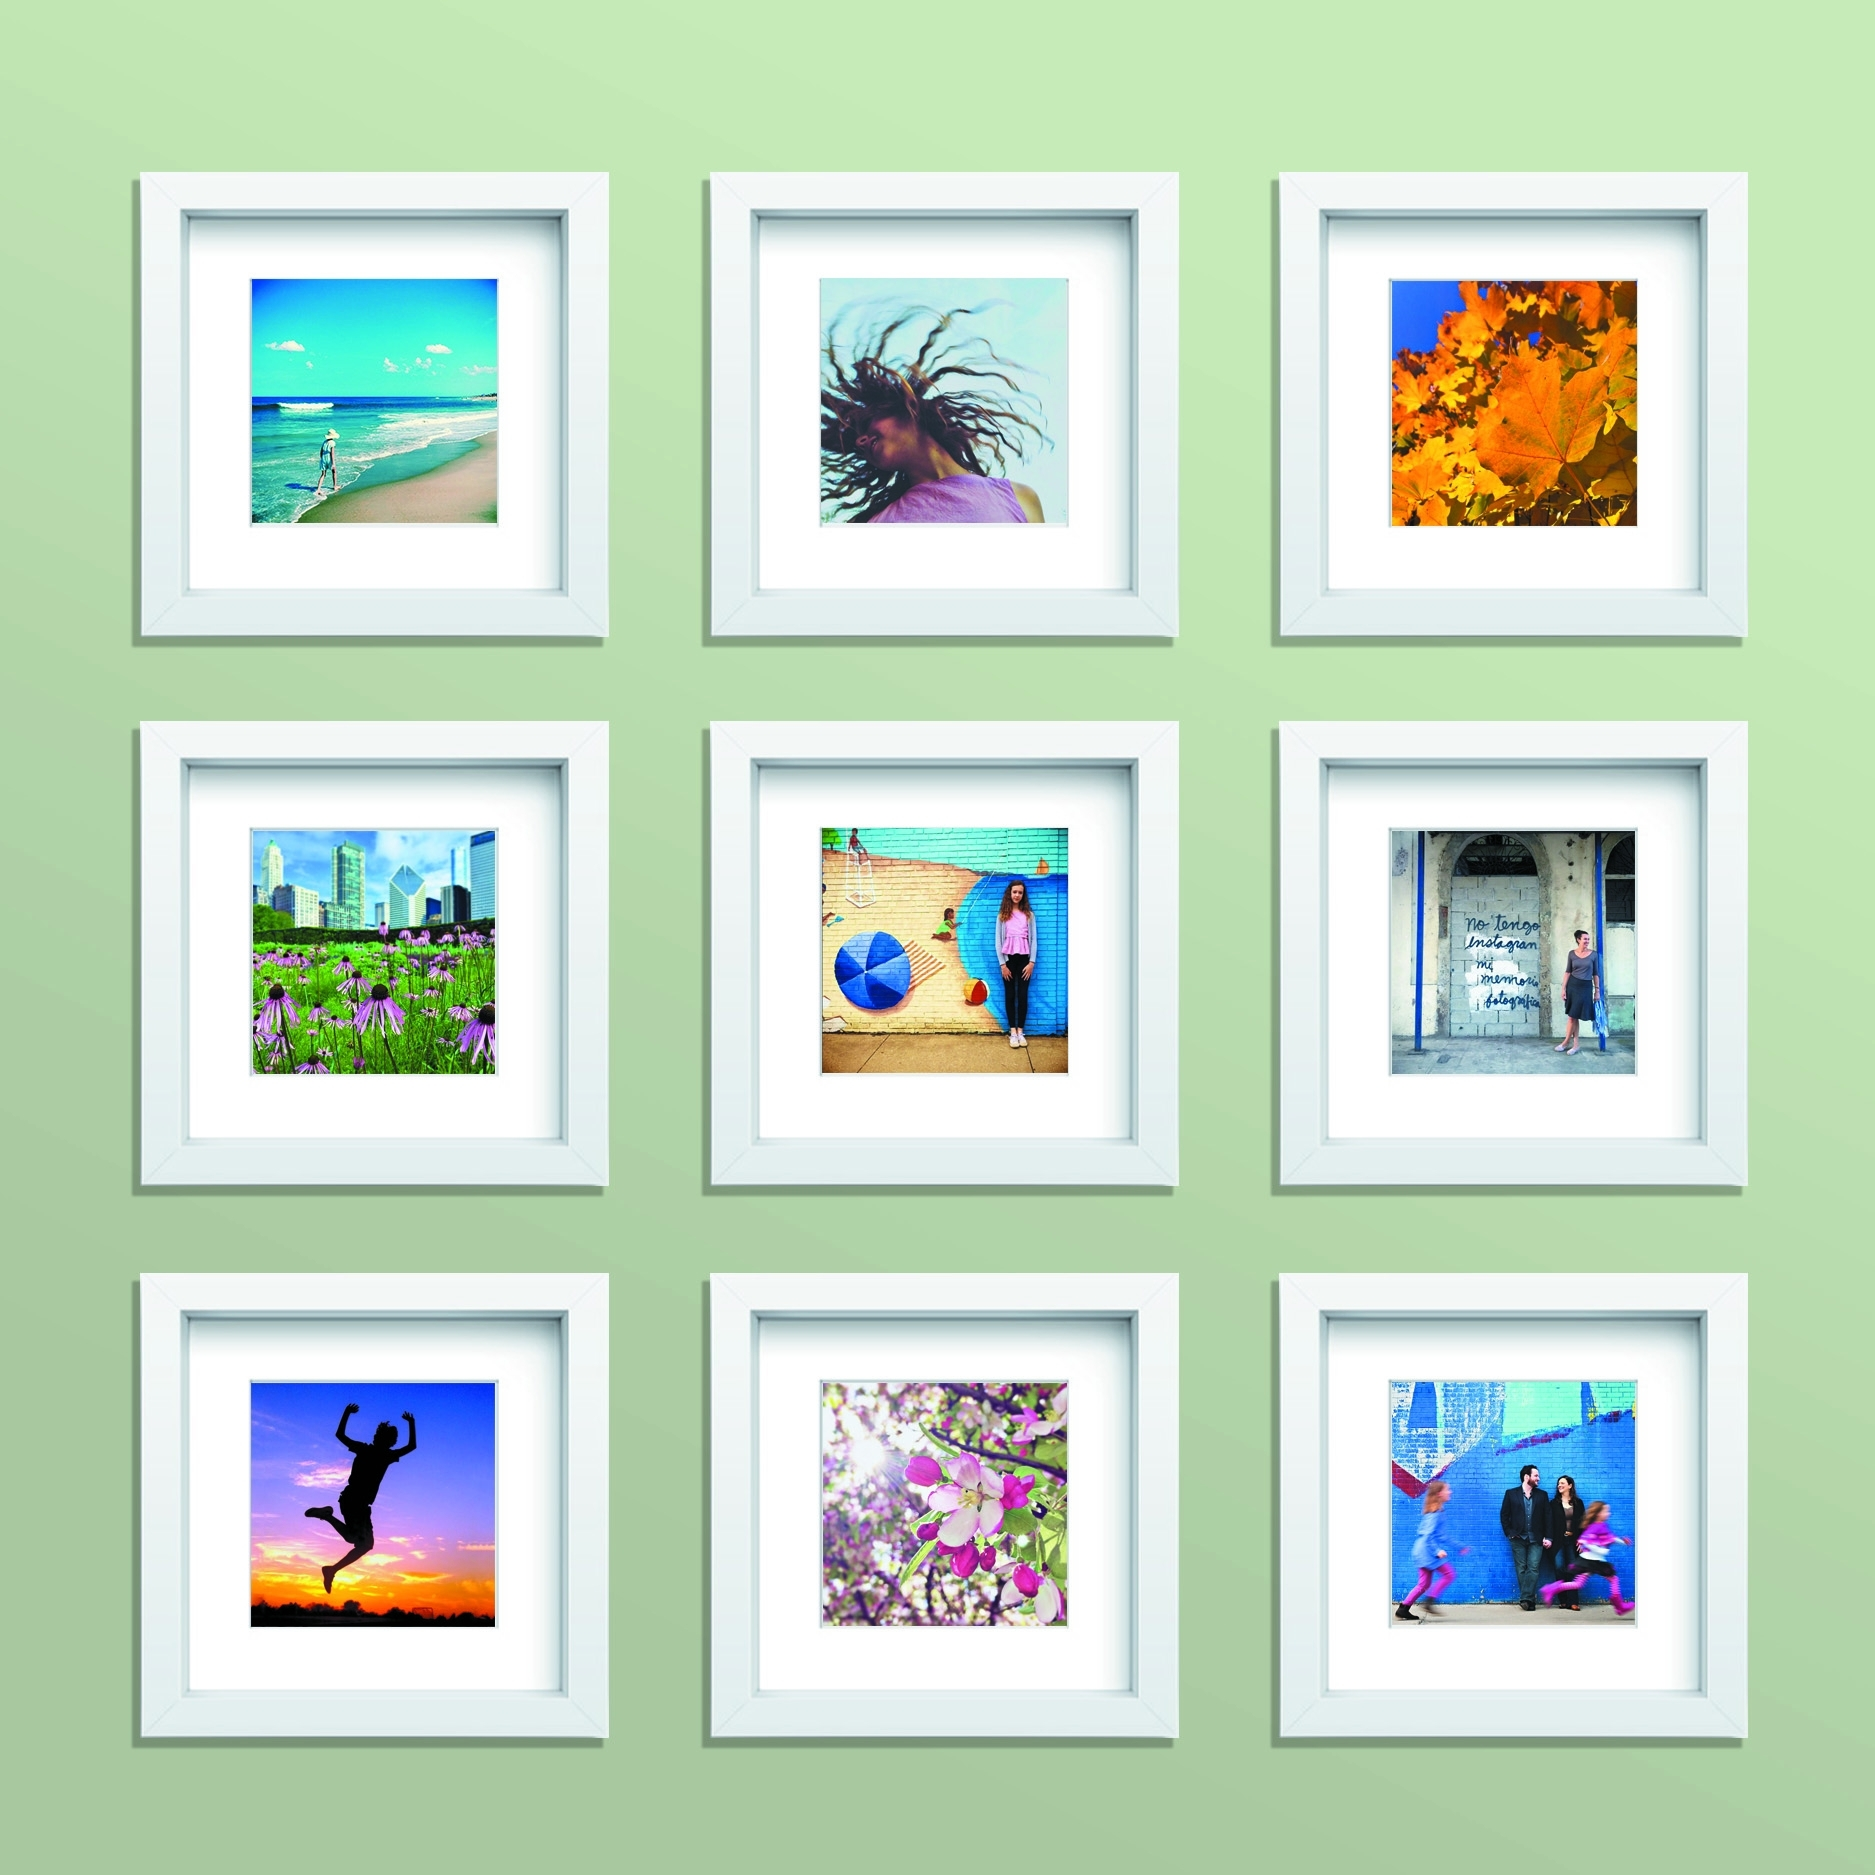 How To Turn Instagram Photos Into Wall Art | Long Island Pulse Magazine Intended For 2018 Instagram Wall Art (Gallery 10 of 20)